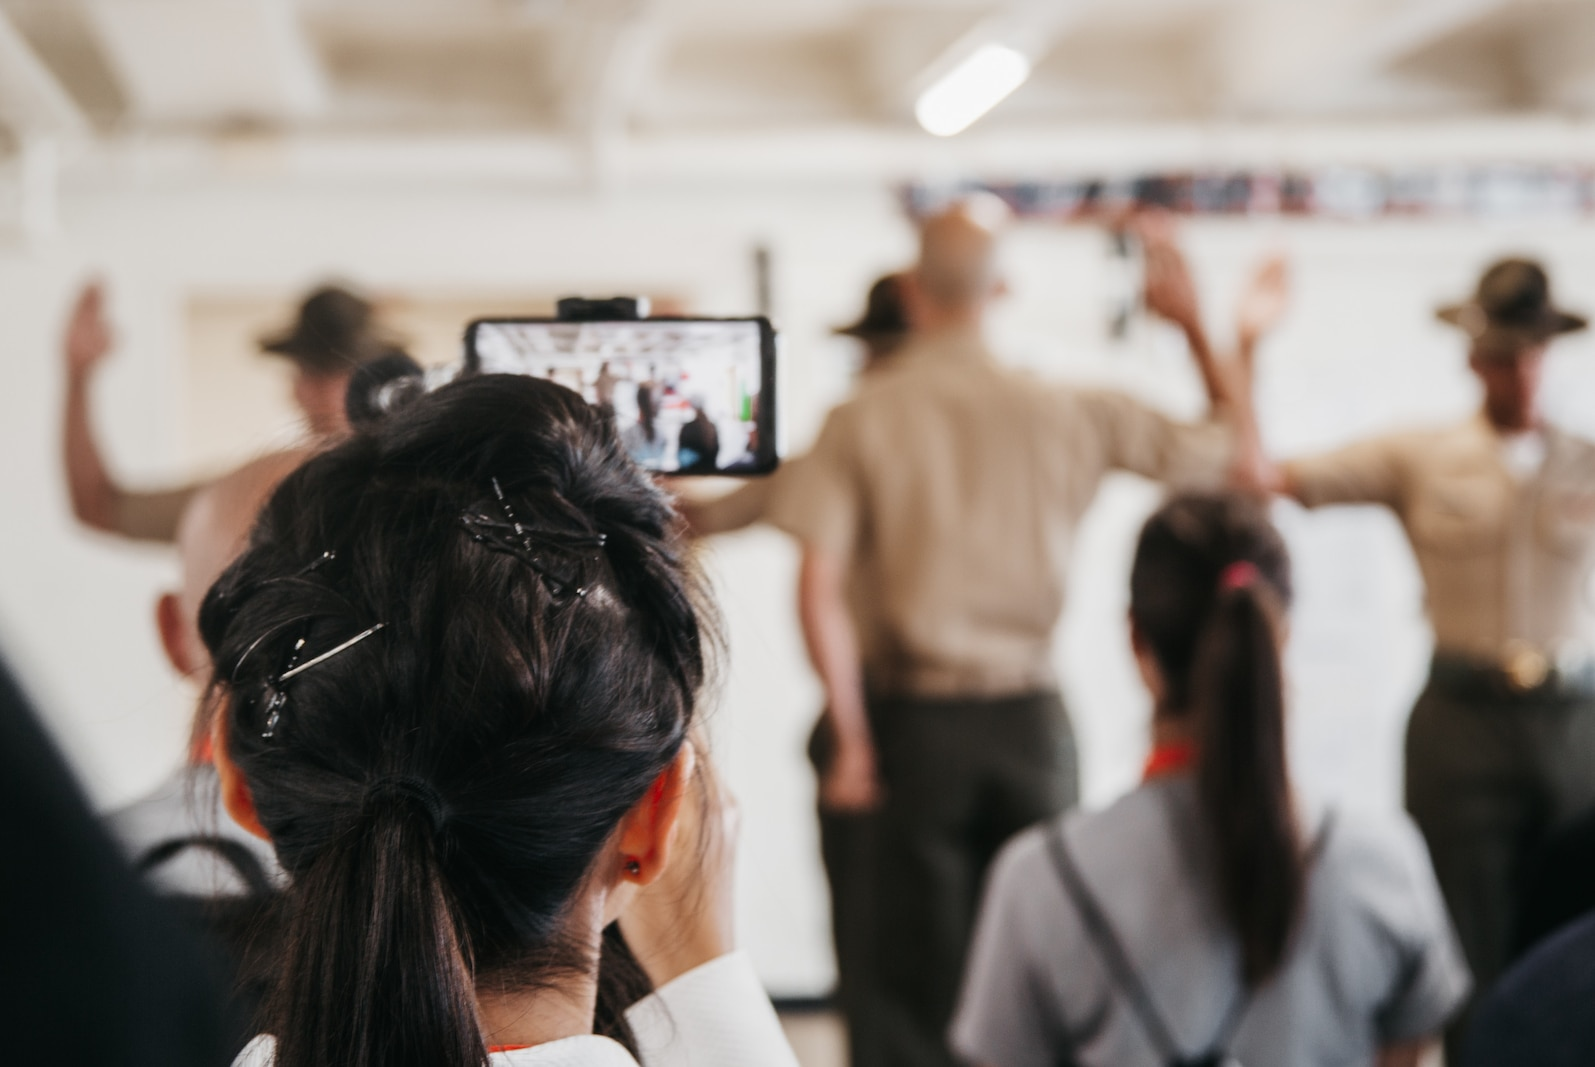 Educators from various locations in California gather to meet their Drill Instructors for the first time just like new recruits during the 12th Marine Corps District Educator's Workshop at Marine Corps Recruit Depot San Diego, California on June 22, 2021.